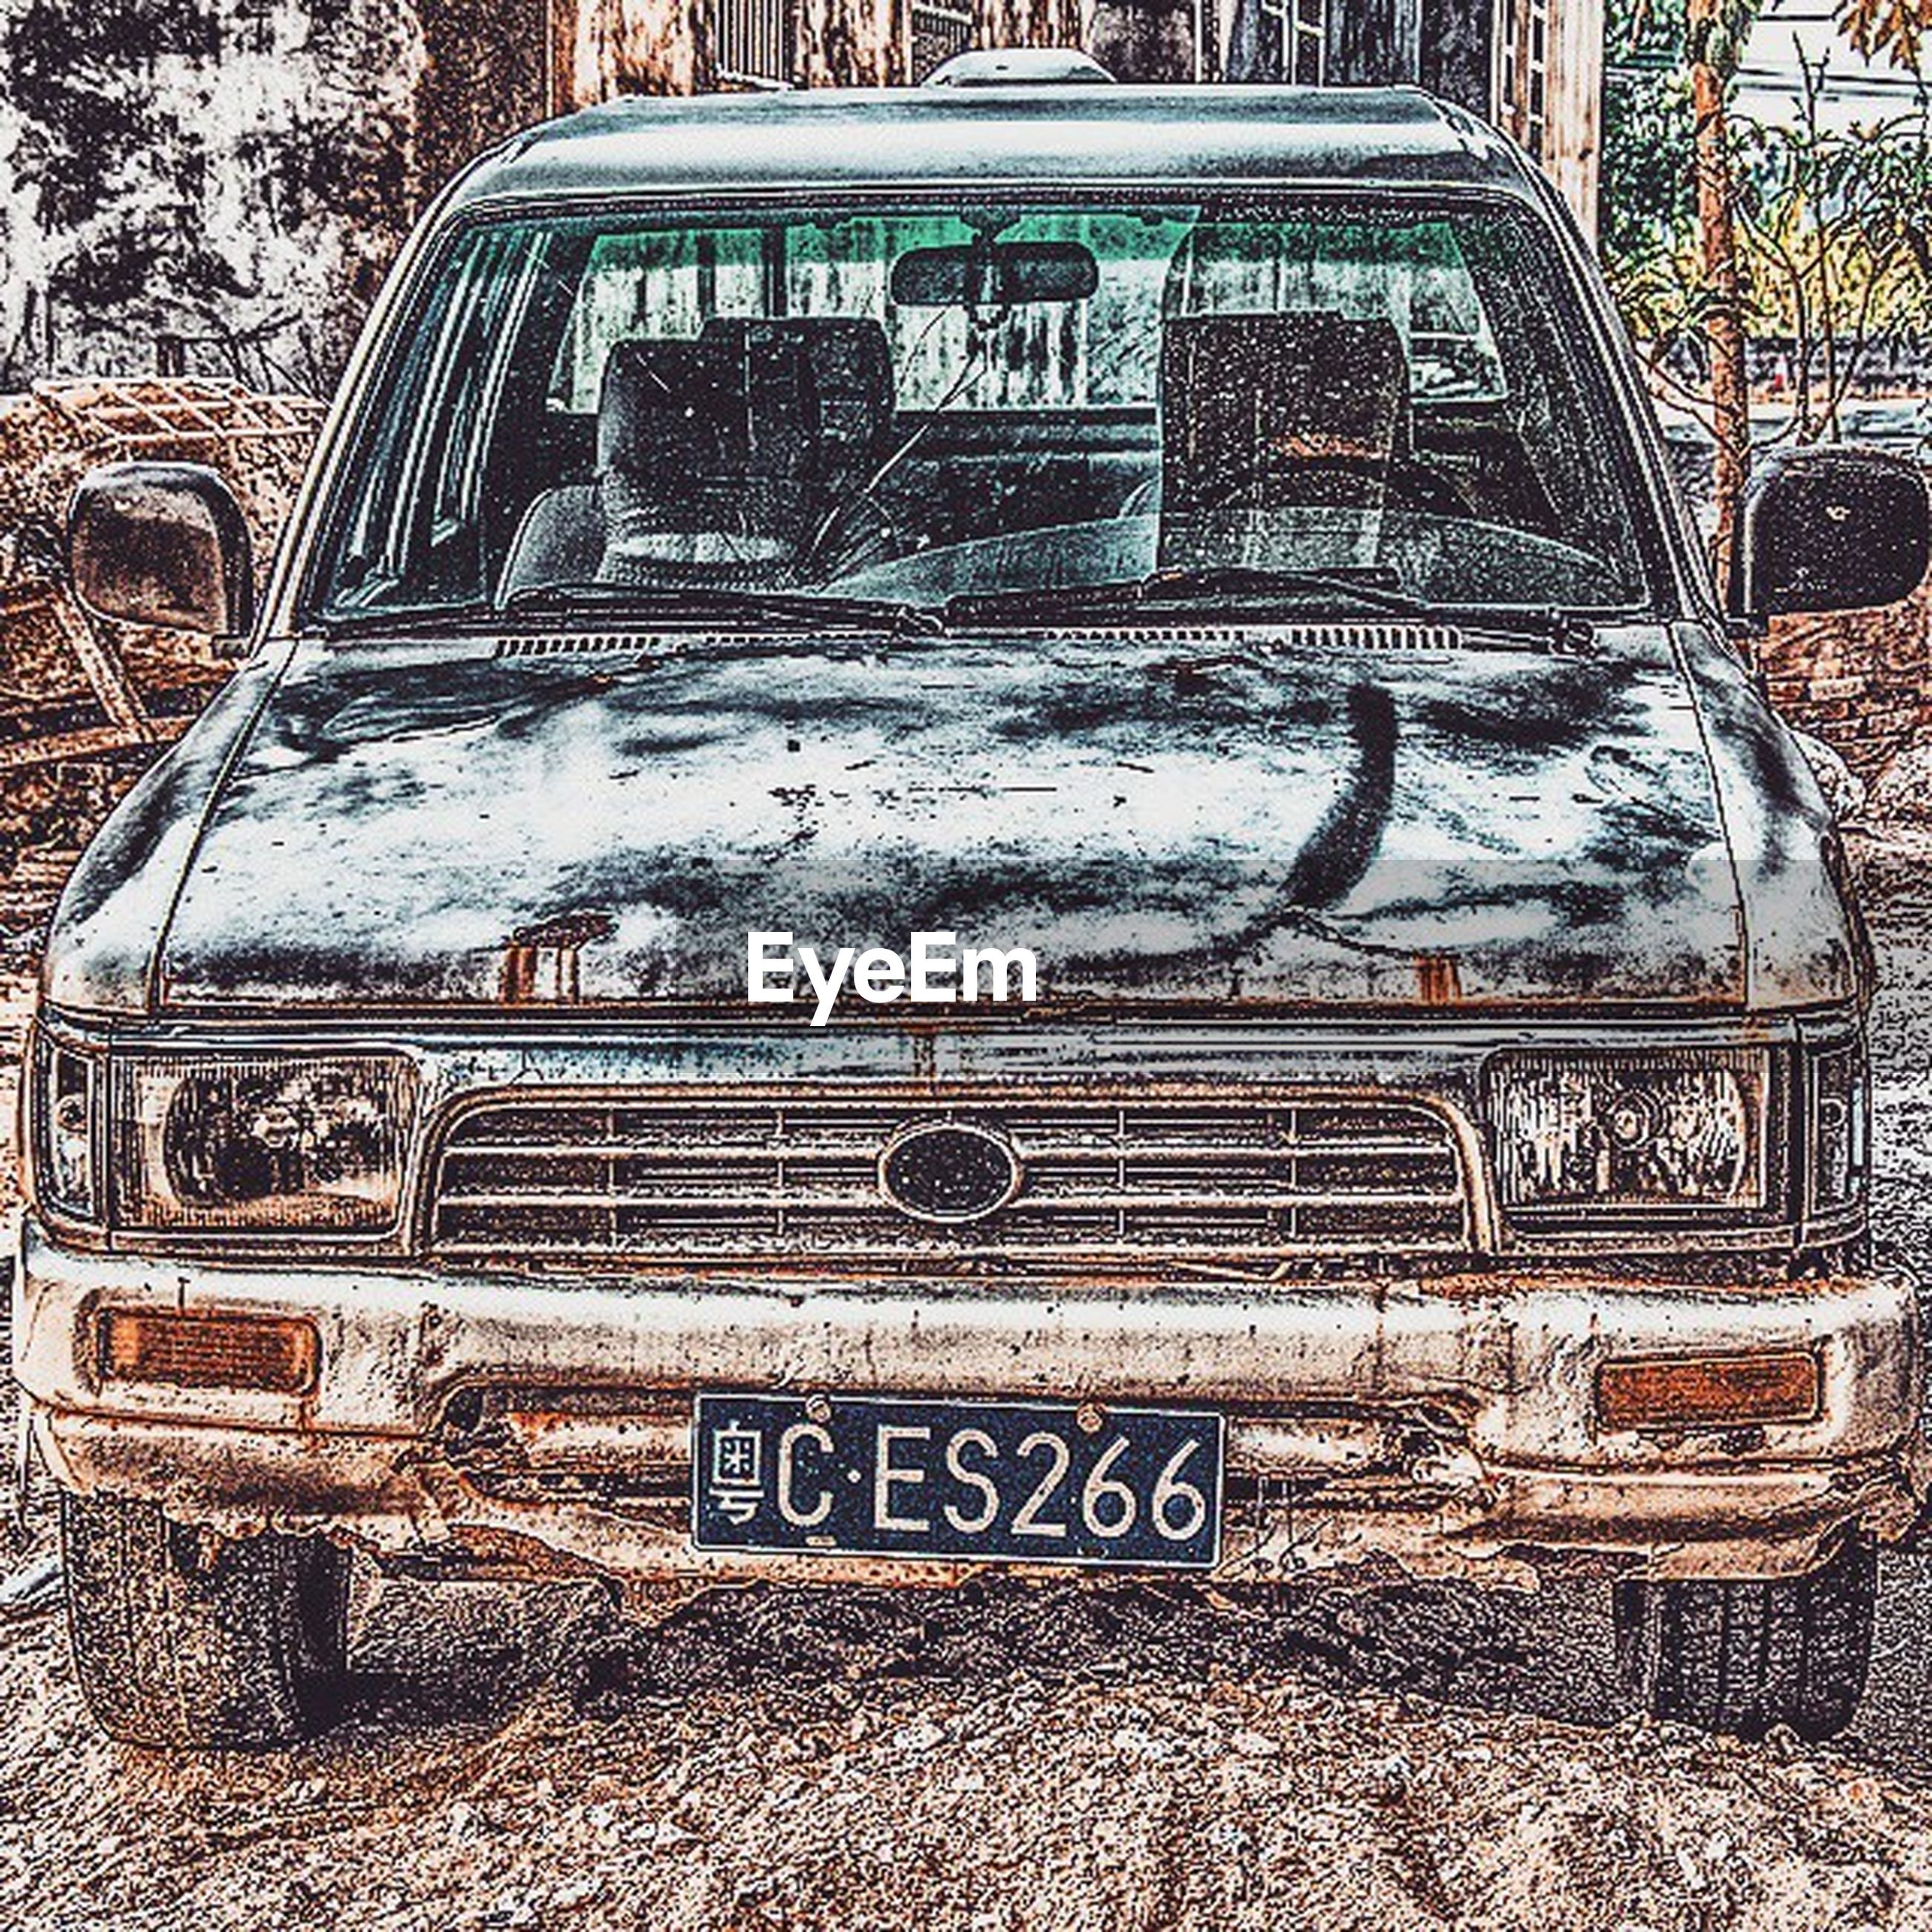 text, western script, communication, day, outdoors, no people, close-up, cold temperature, metal, winter, building exterior, abandoned, covering, capital letter, damaged, graffiti, car, non-western script, field, number